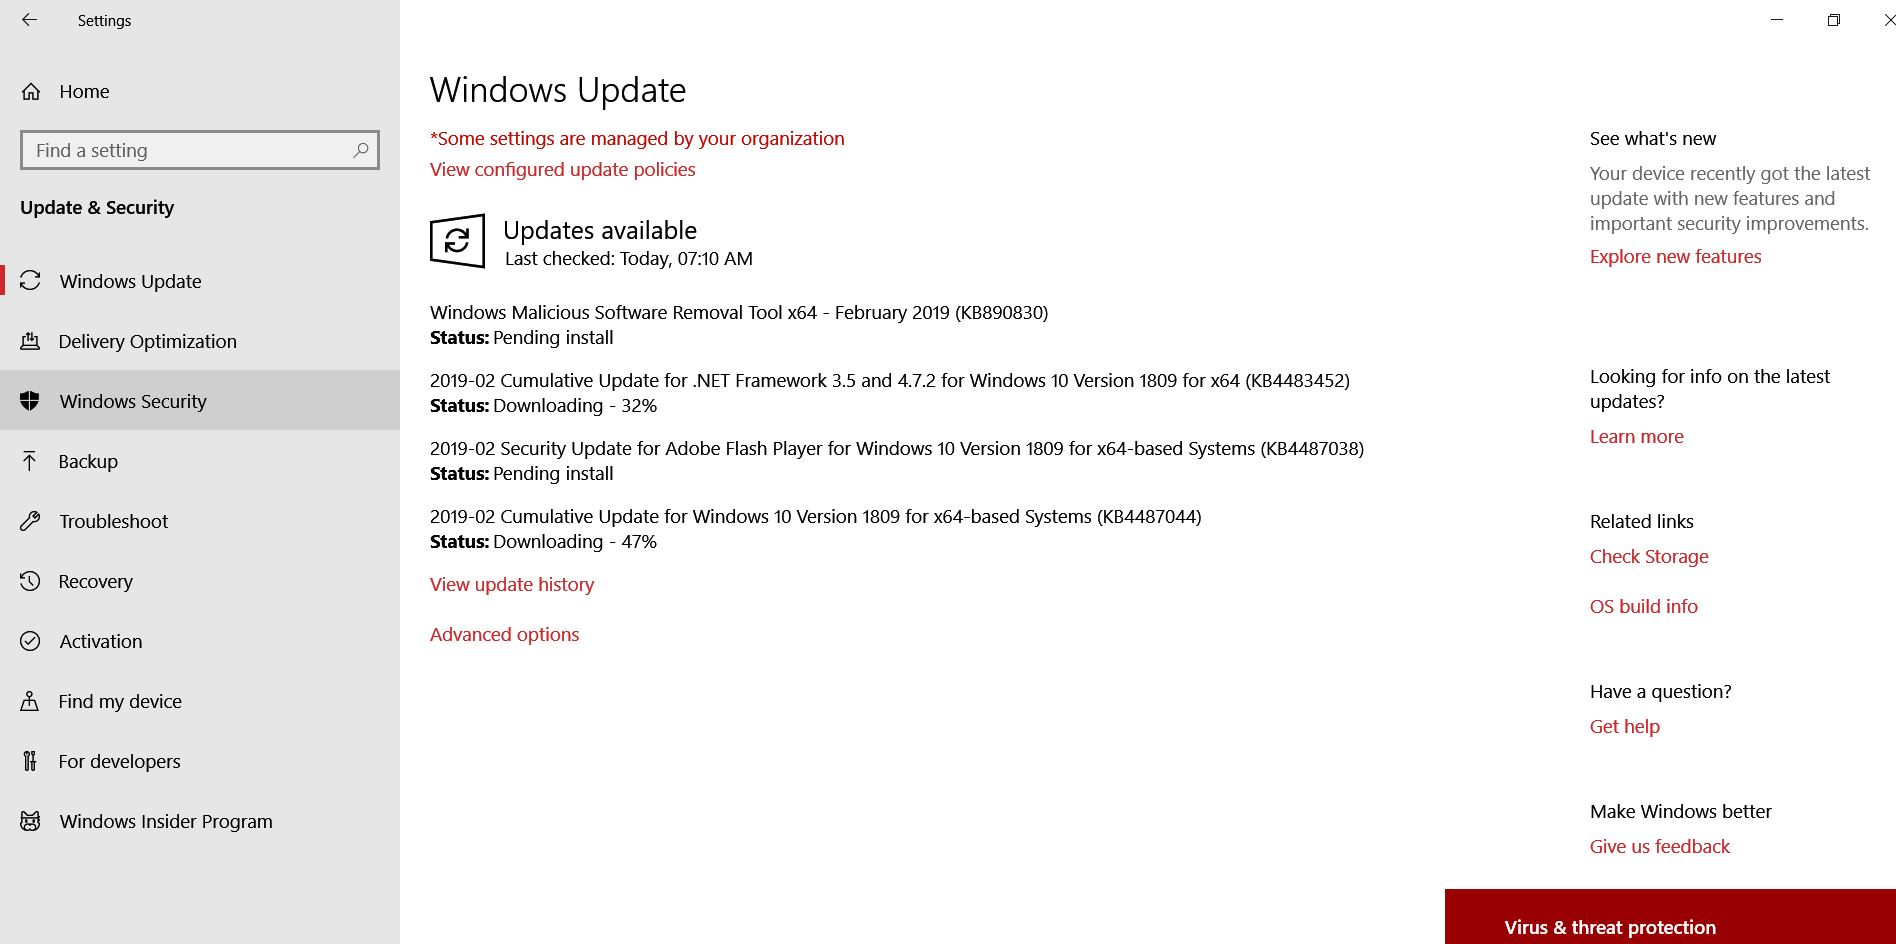 WINDOWS UPDATE RELEASED CLU KB4482887 TO WINDOWS 10 1809 AND